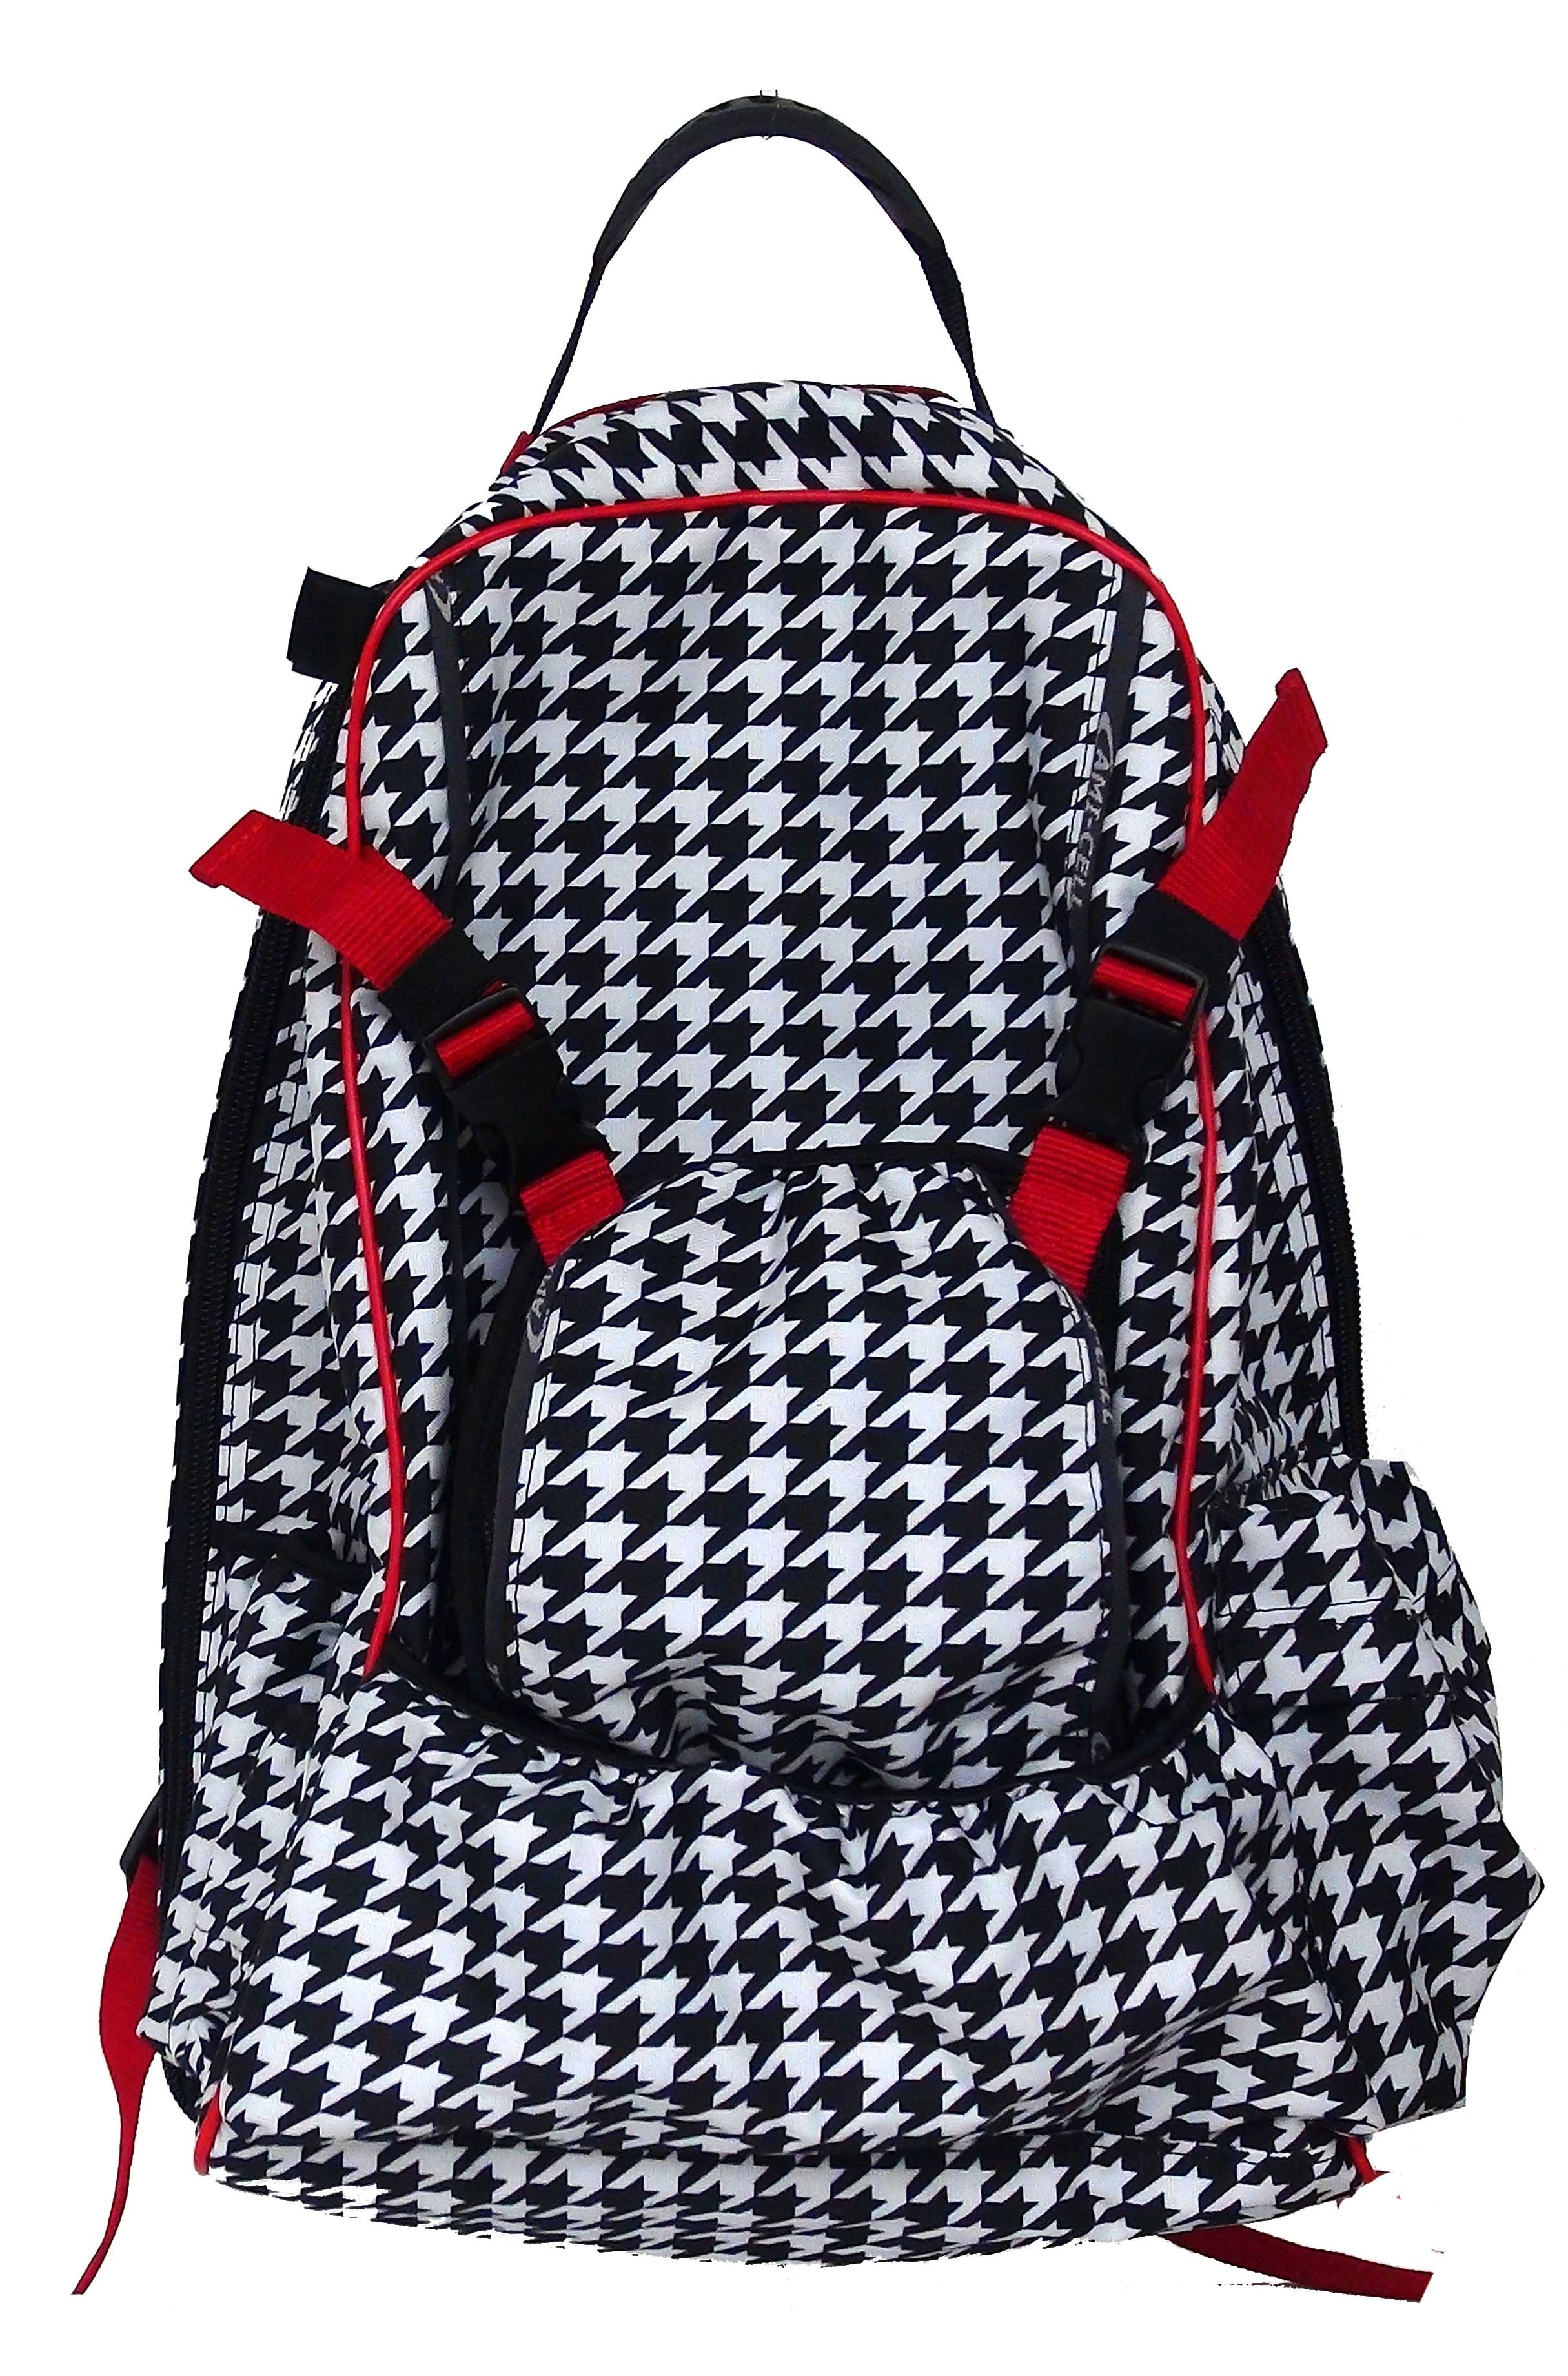 Lami-Cell Houndstooth Rider's Back Pack